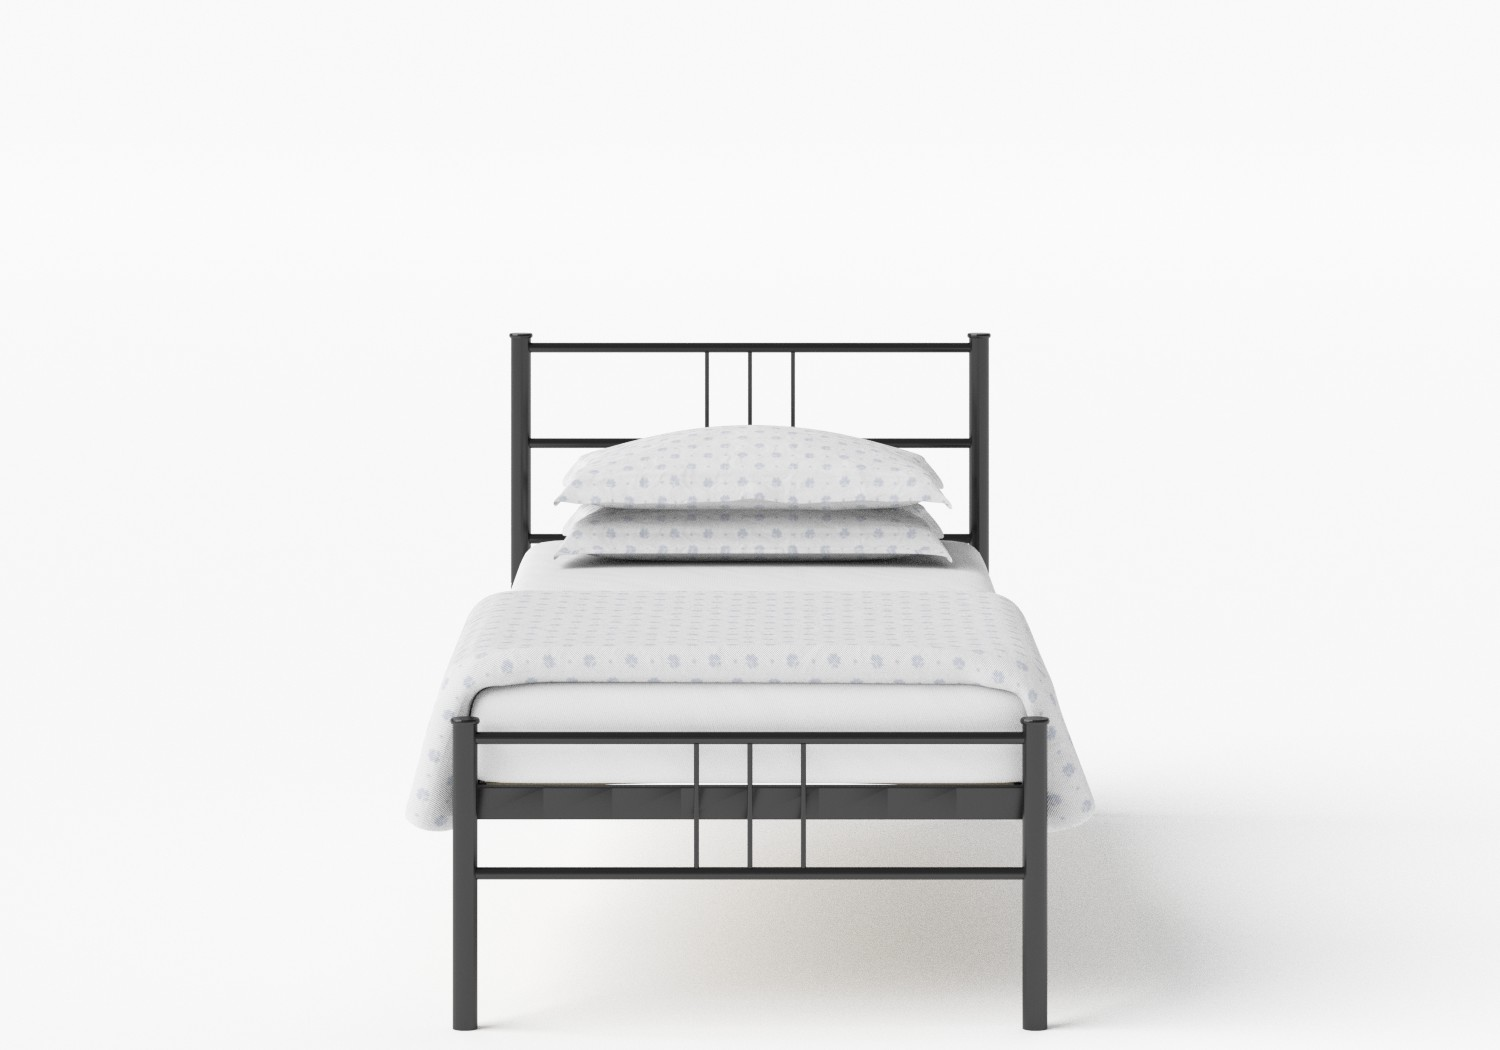 Mortlake Single Iron/Metal Bed in Satin Black